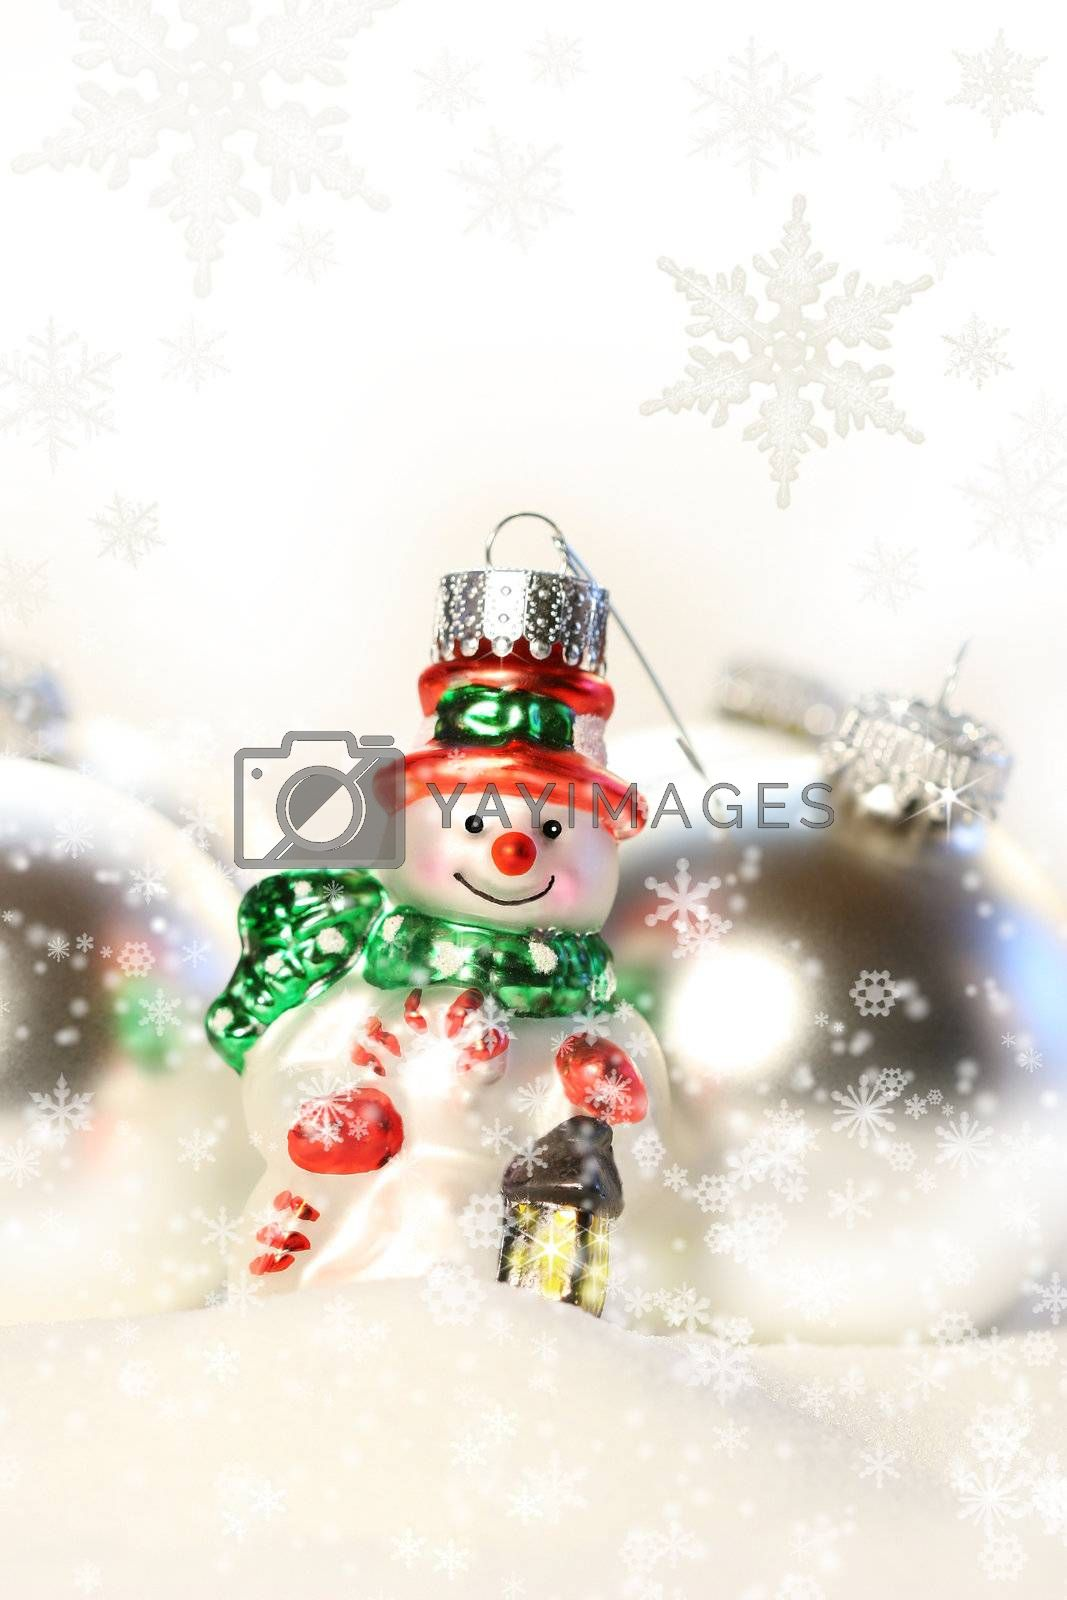 Little snowman ornament in the snow by Sandralise